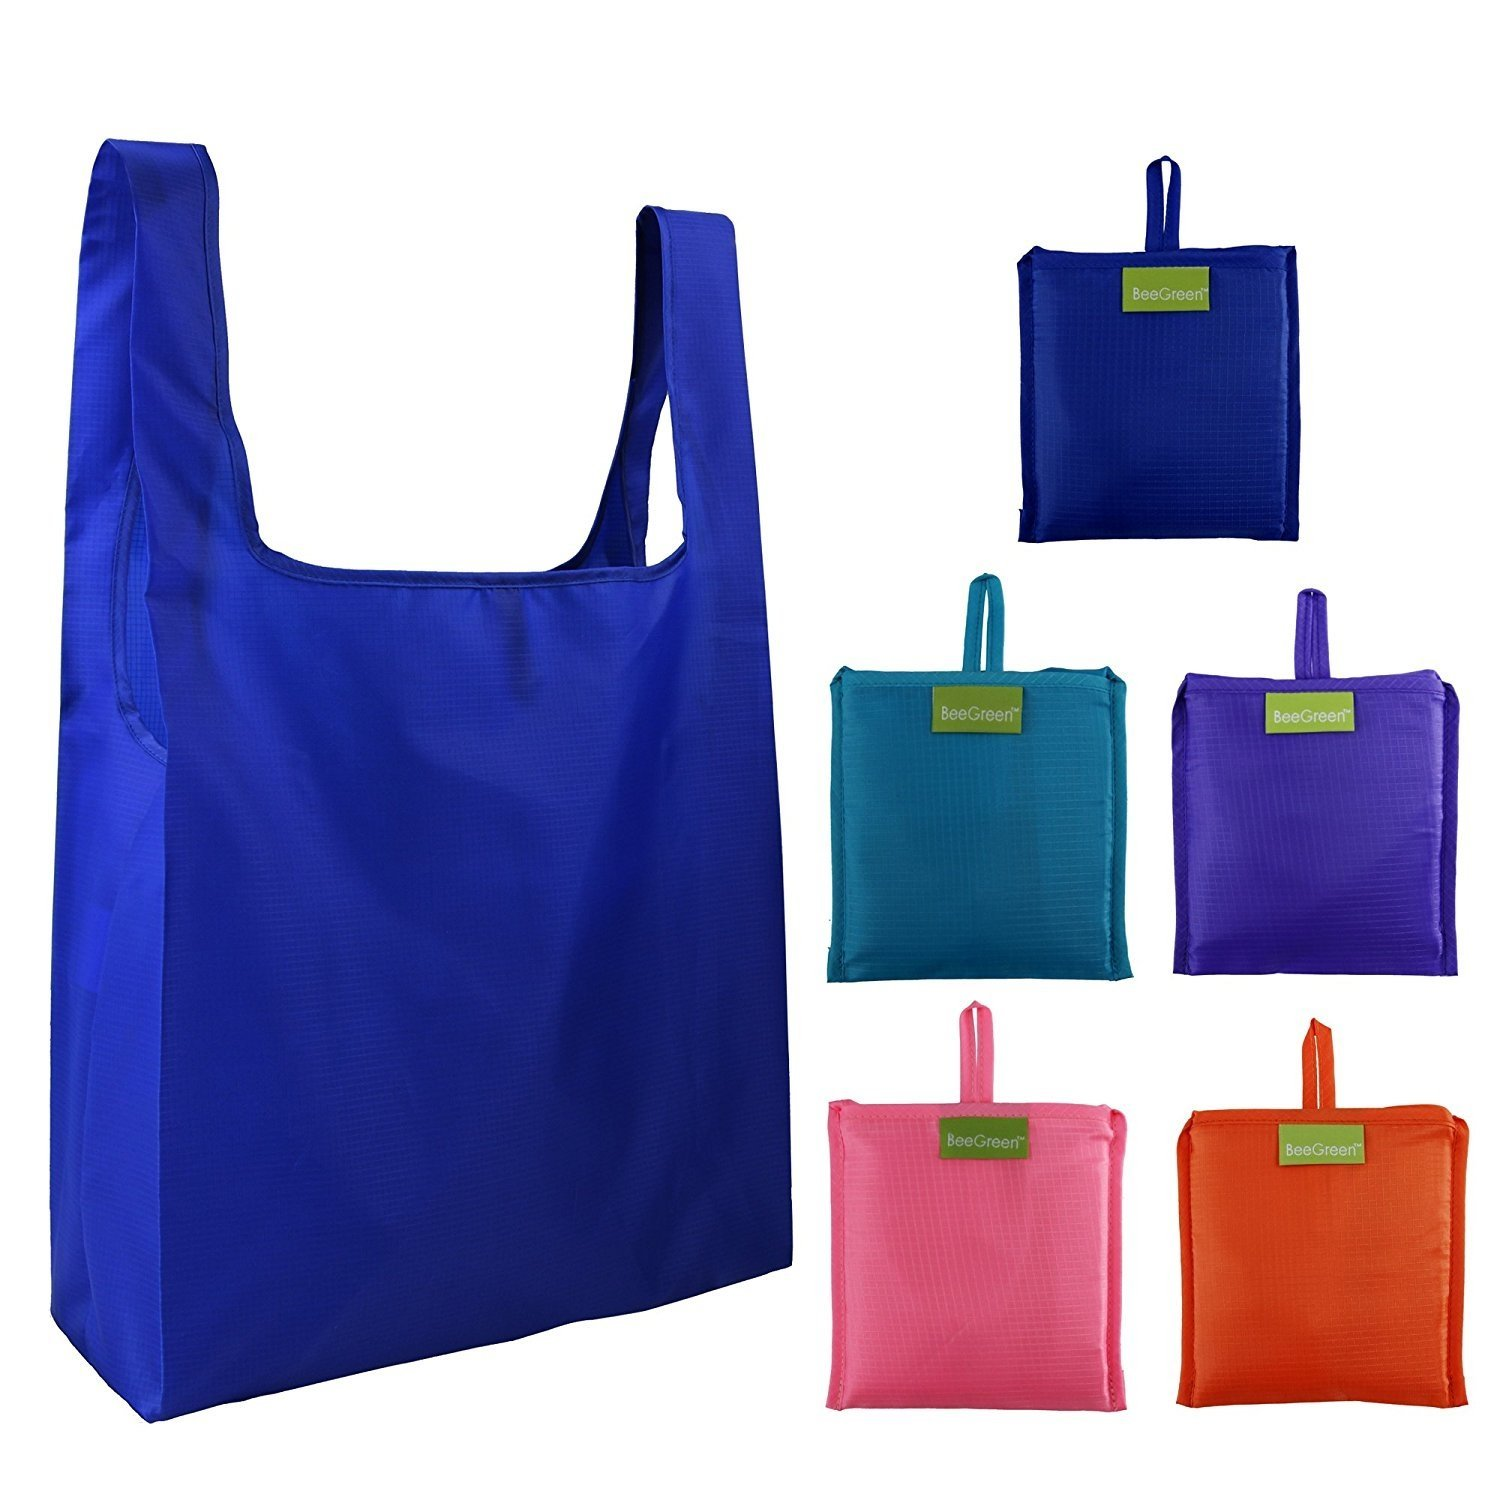 Foldable-Shopping-Bags-Reusable-Grocery Bags Set Black 5 Pack, Shopper Tote Foldable into Attached Pouch, Eco-Friendly Ripstop Polyester Reusable Shopping Bags, Washable, Durable and Lightweight